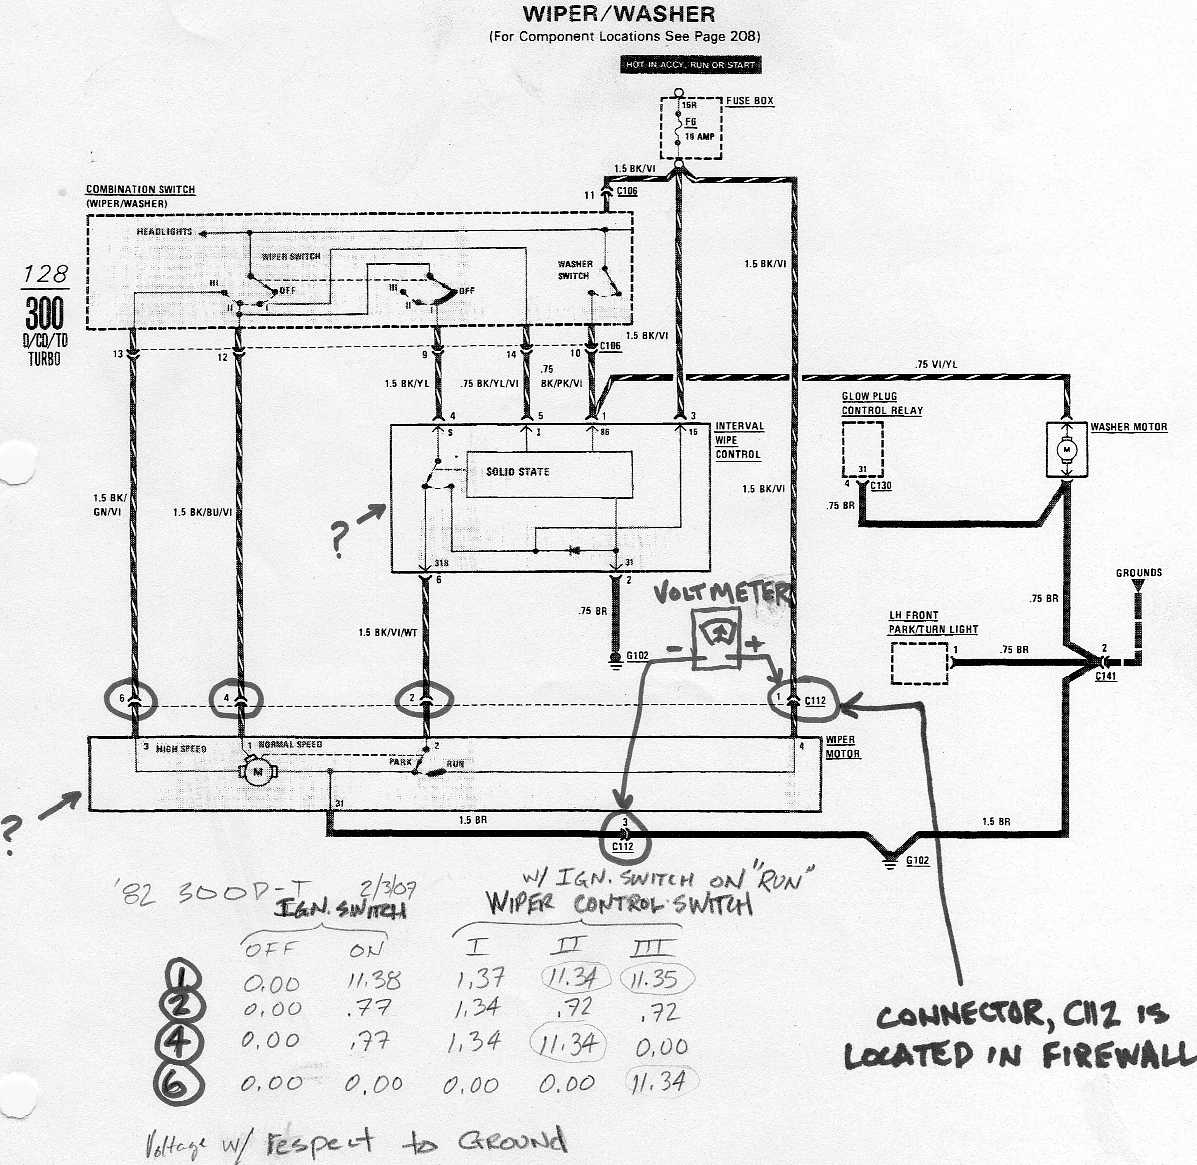 Diagram In Pictures Database 1970 Nova Windshield Wiper Wiring Diagram Just Download Or Read Wiring Diagram Online Casalamm Edu Mx